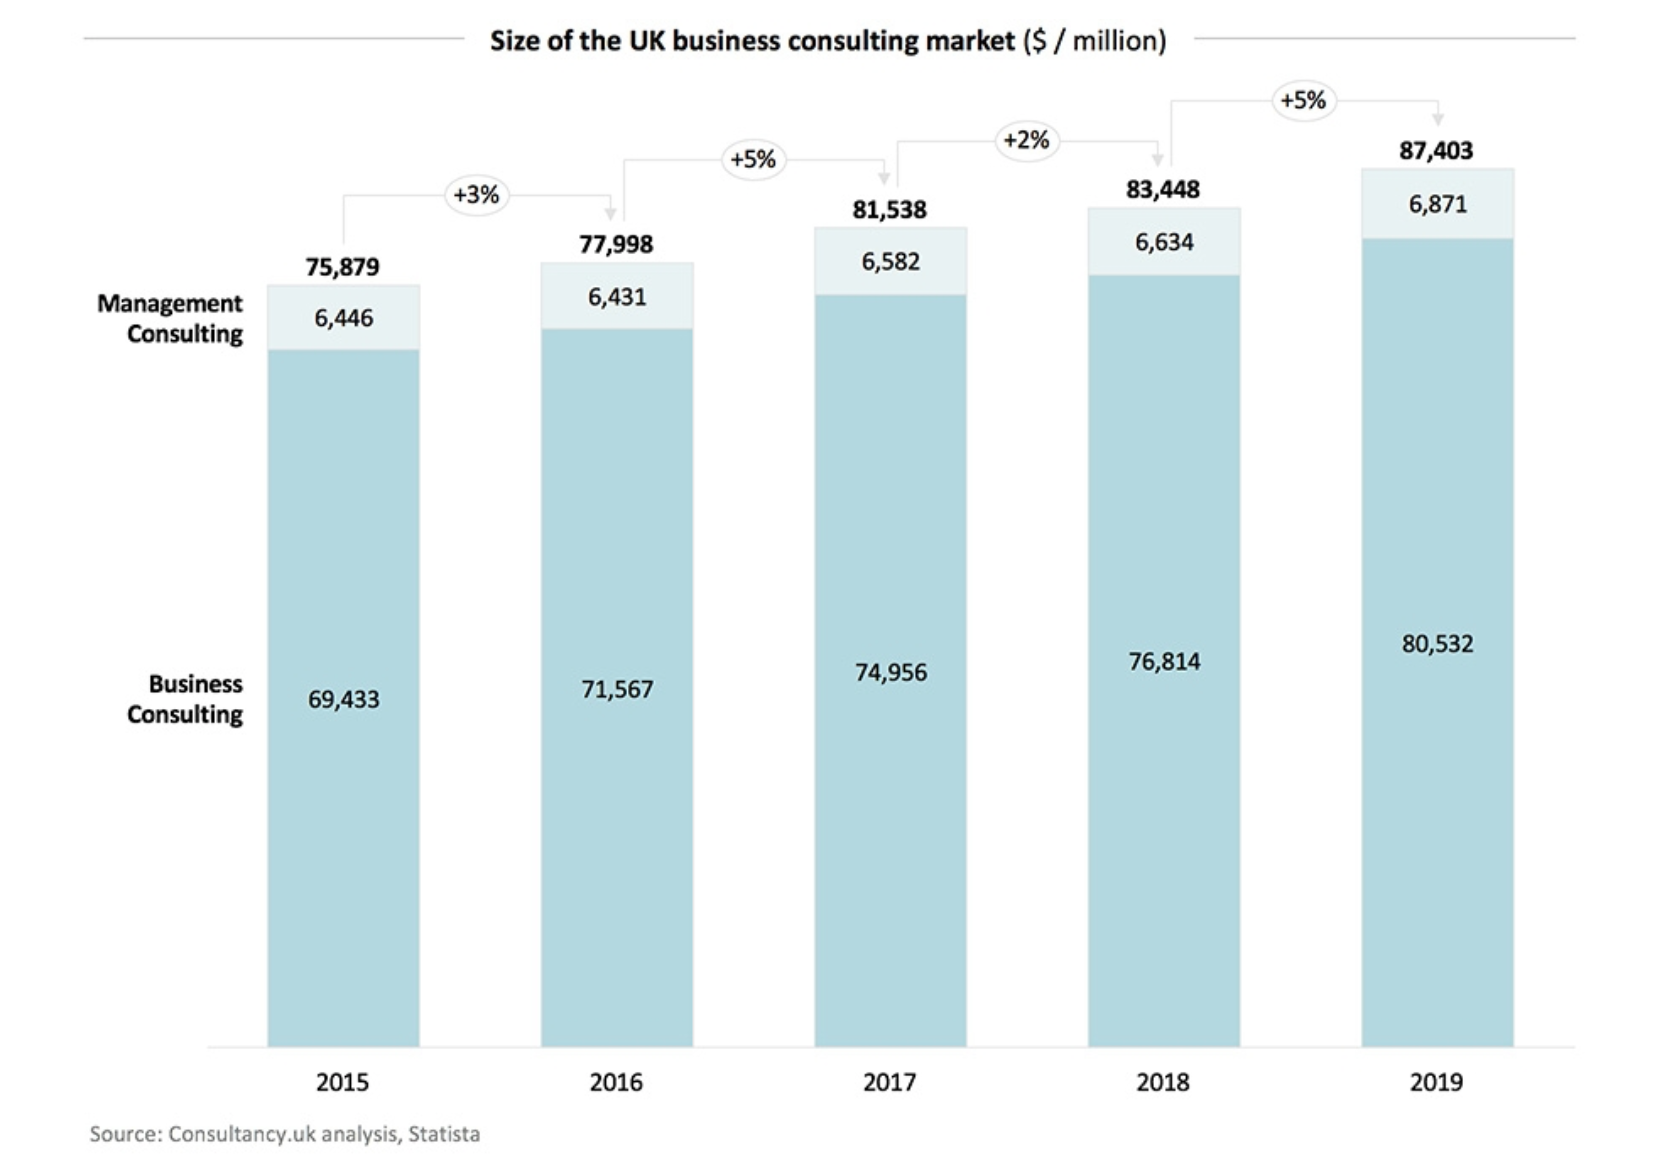 A graph showing the size of the uk business consulting market